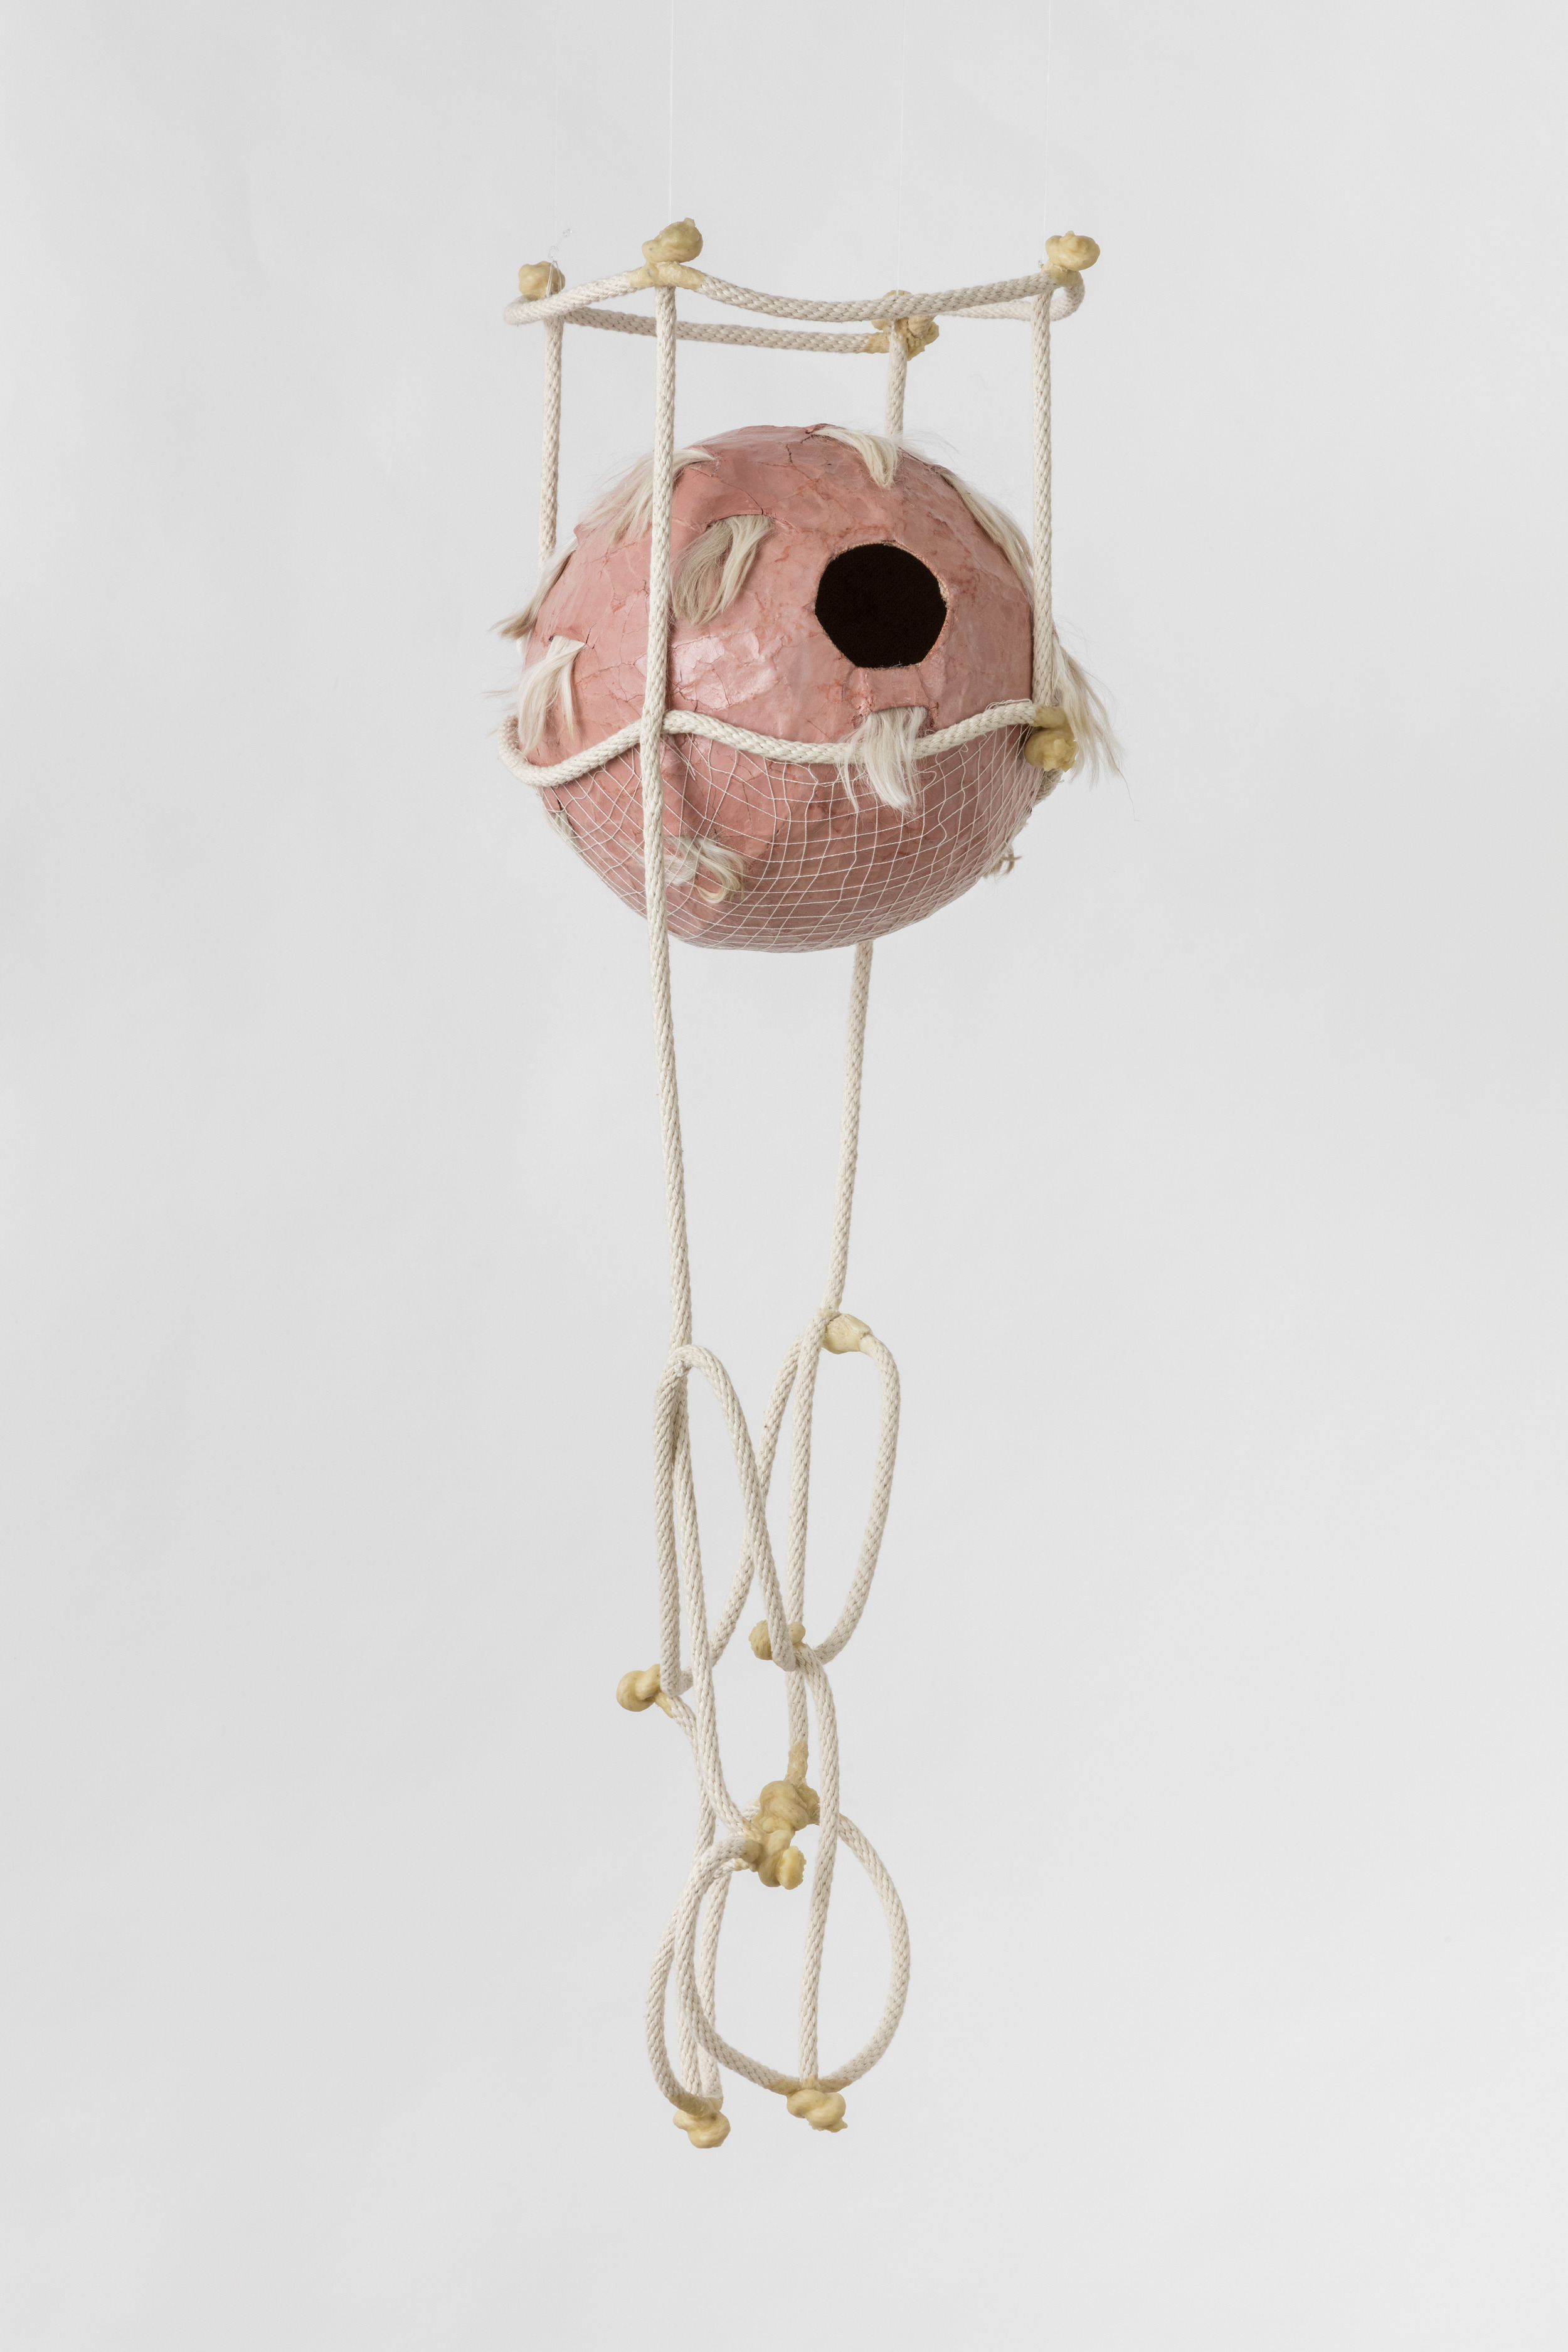 Tanya Aguiniga   Gynic Dispossession 2 , 2016  Cotton rope, cotton thread, canvas, self-drying clay,alpaca and beeswax  32 x 12 x 12 inches